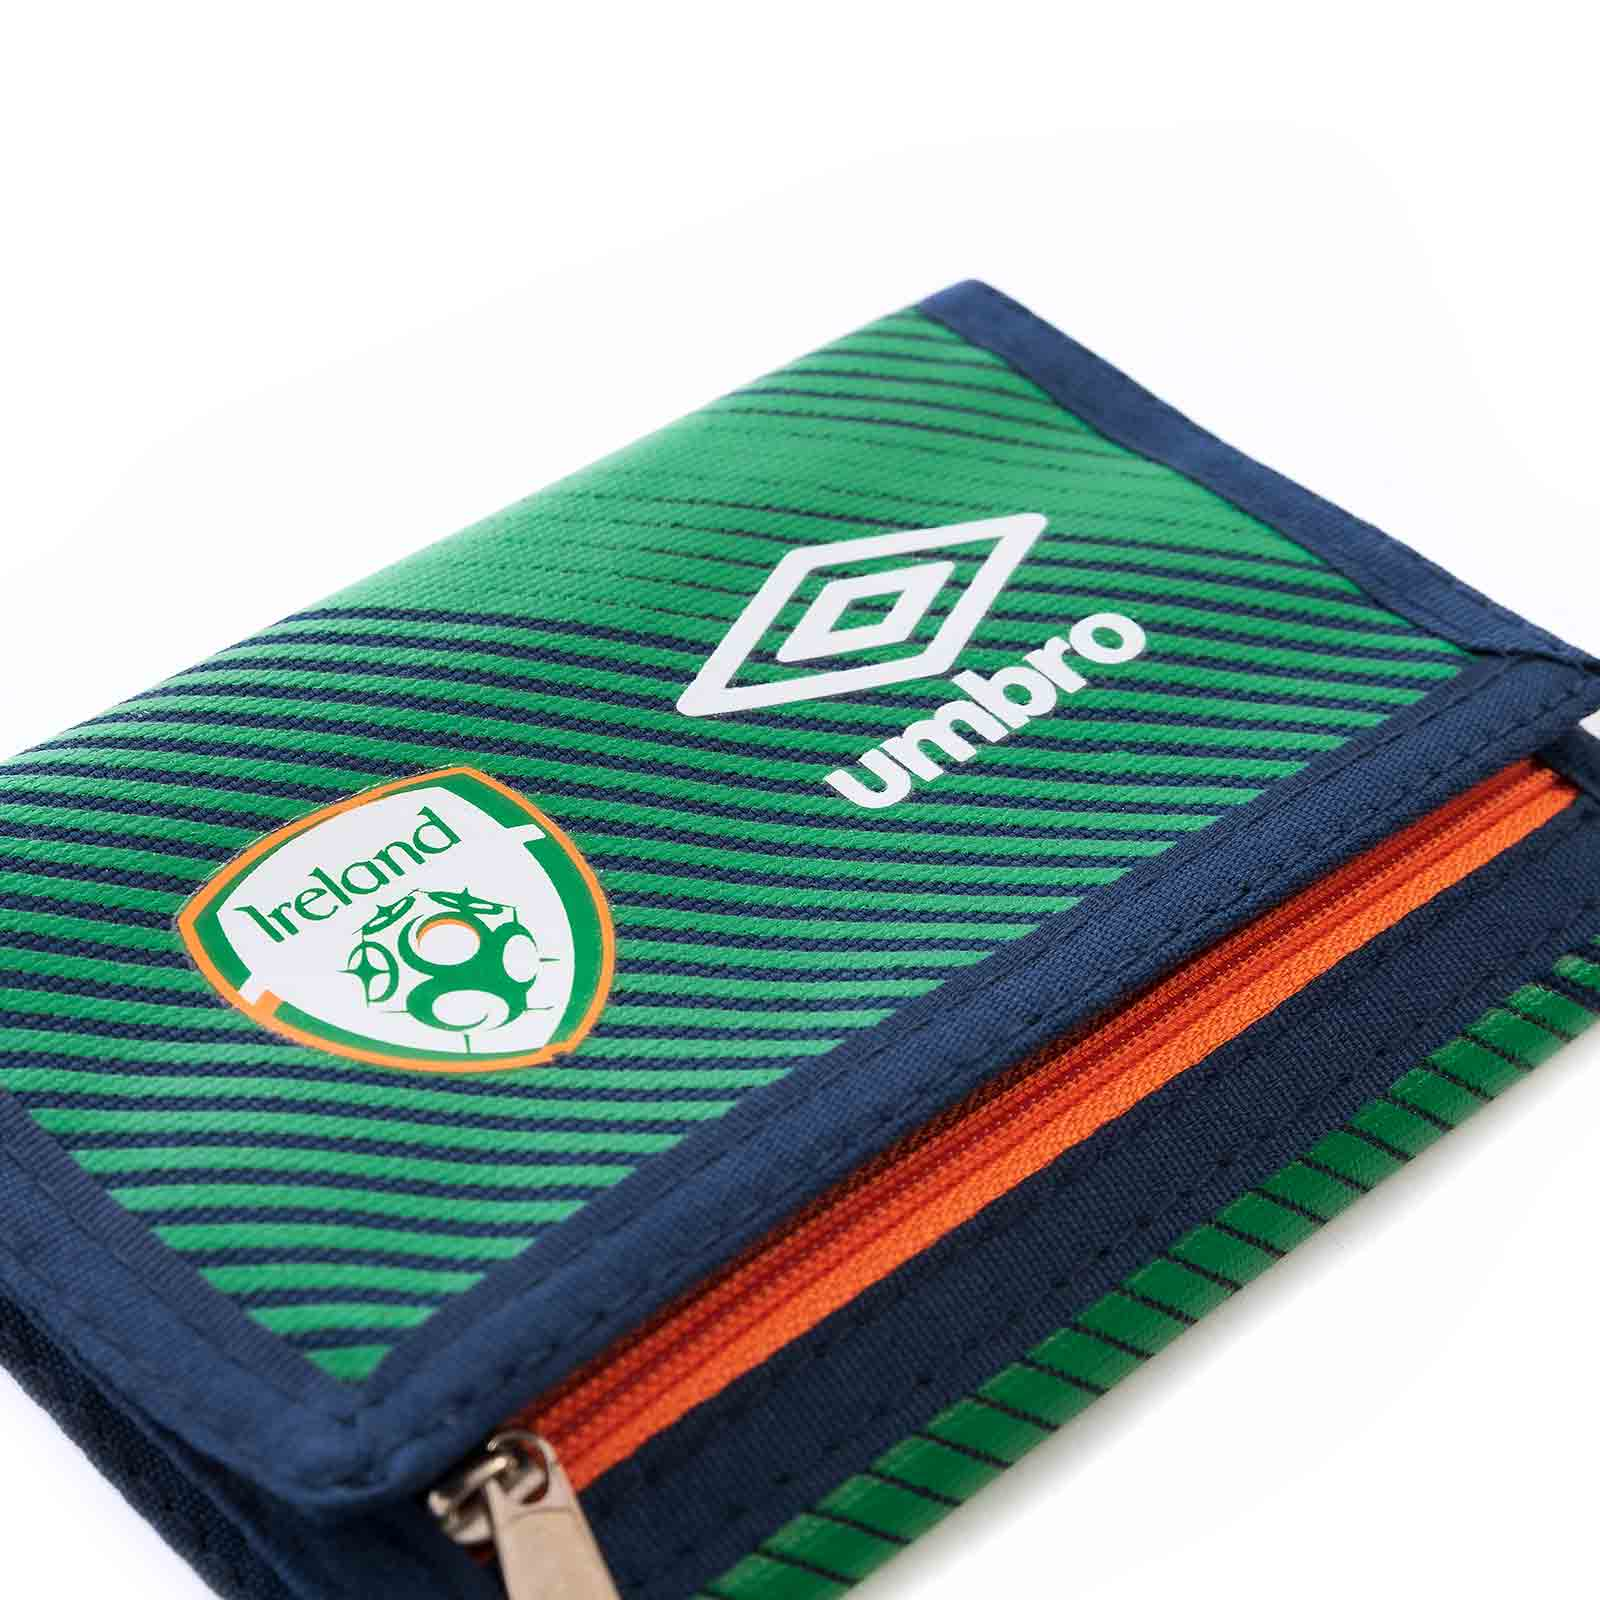 Umbro FAI 21 Wallet Green / Navy